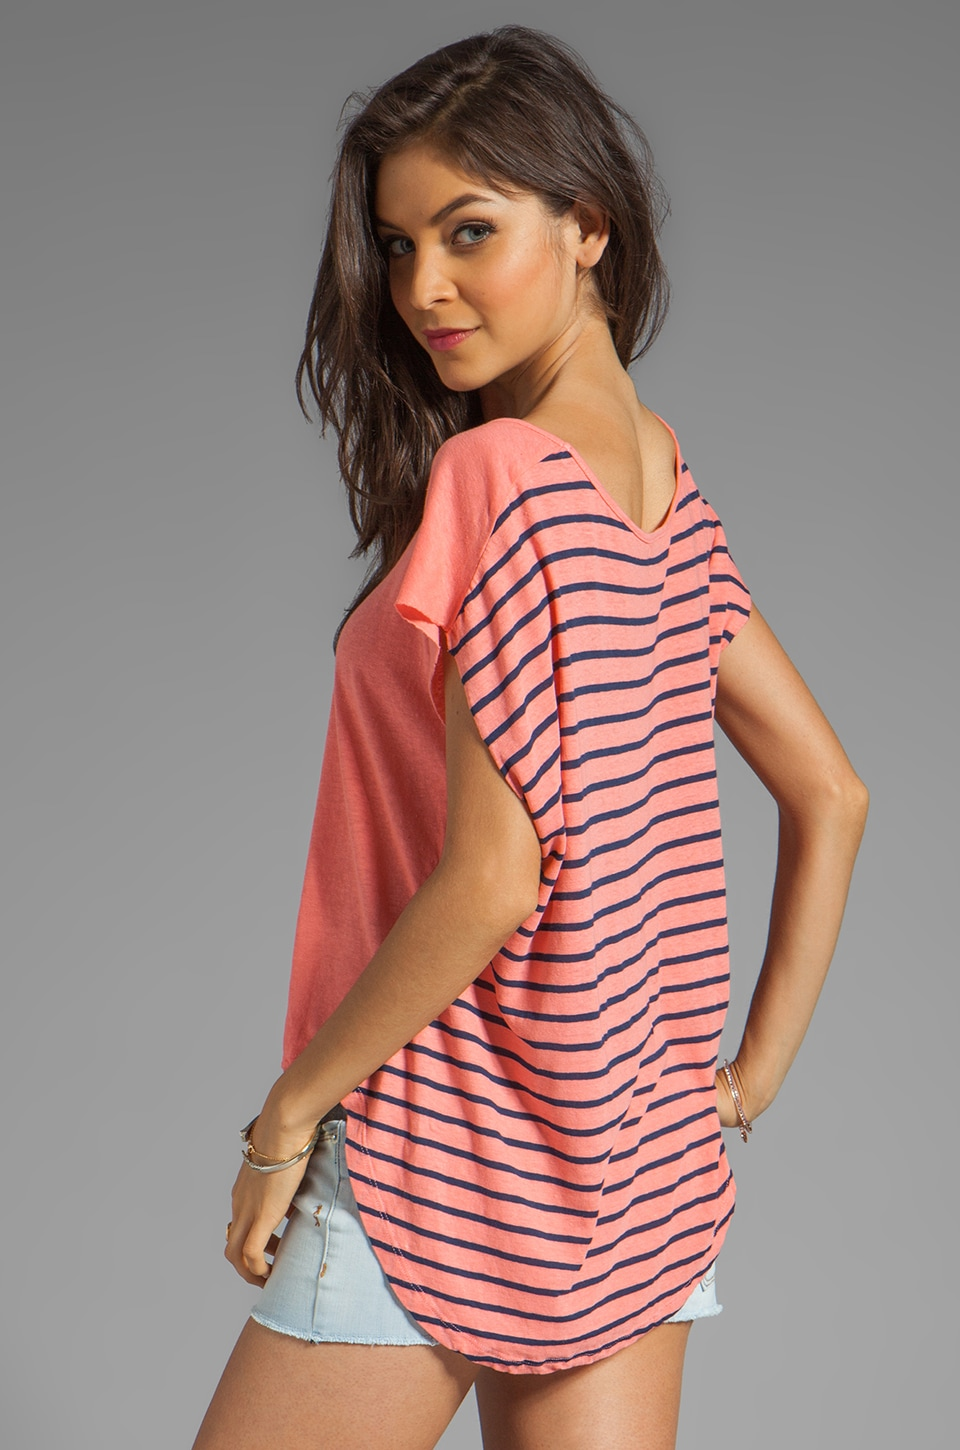 My Line Piper Short Sleeved Pullover in Salmon